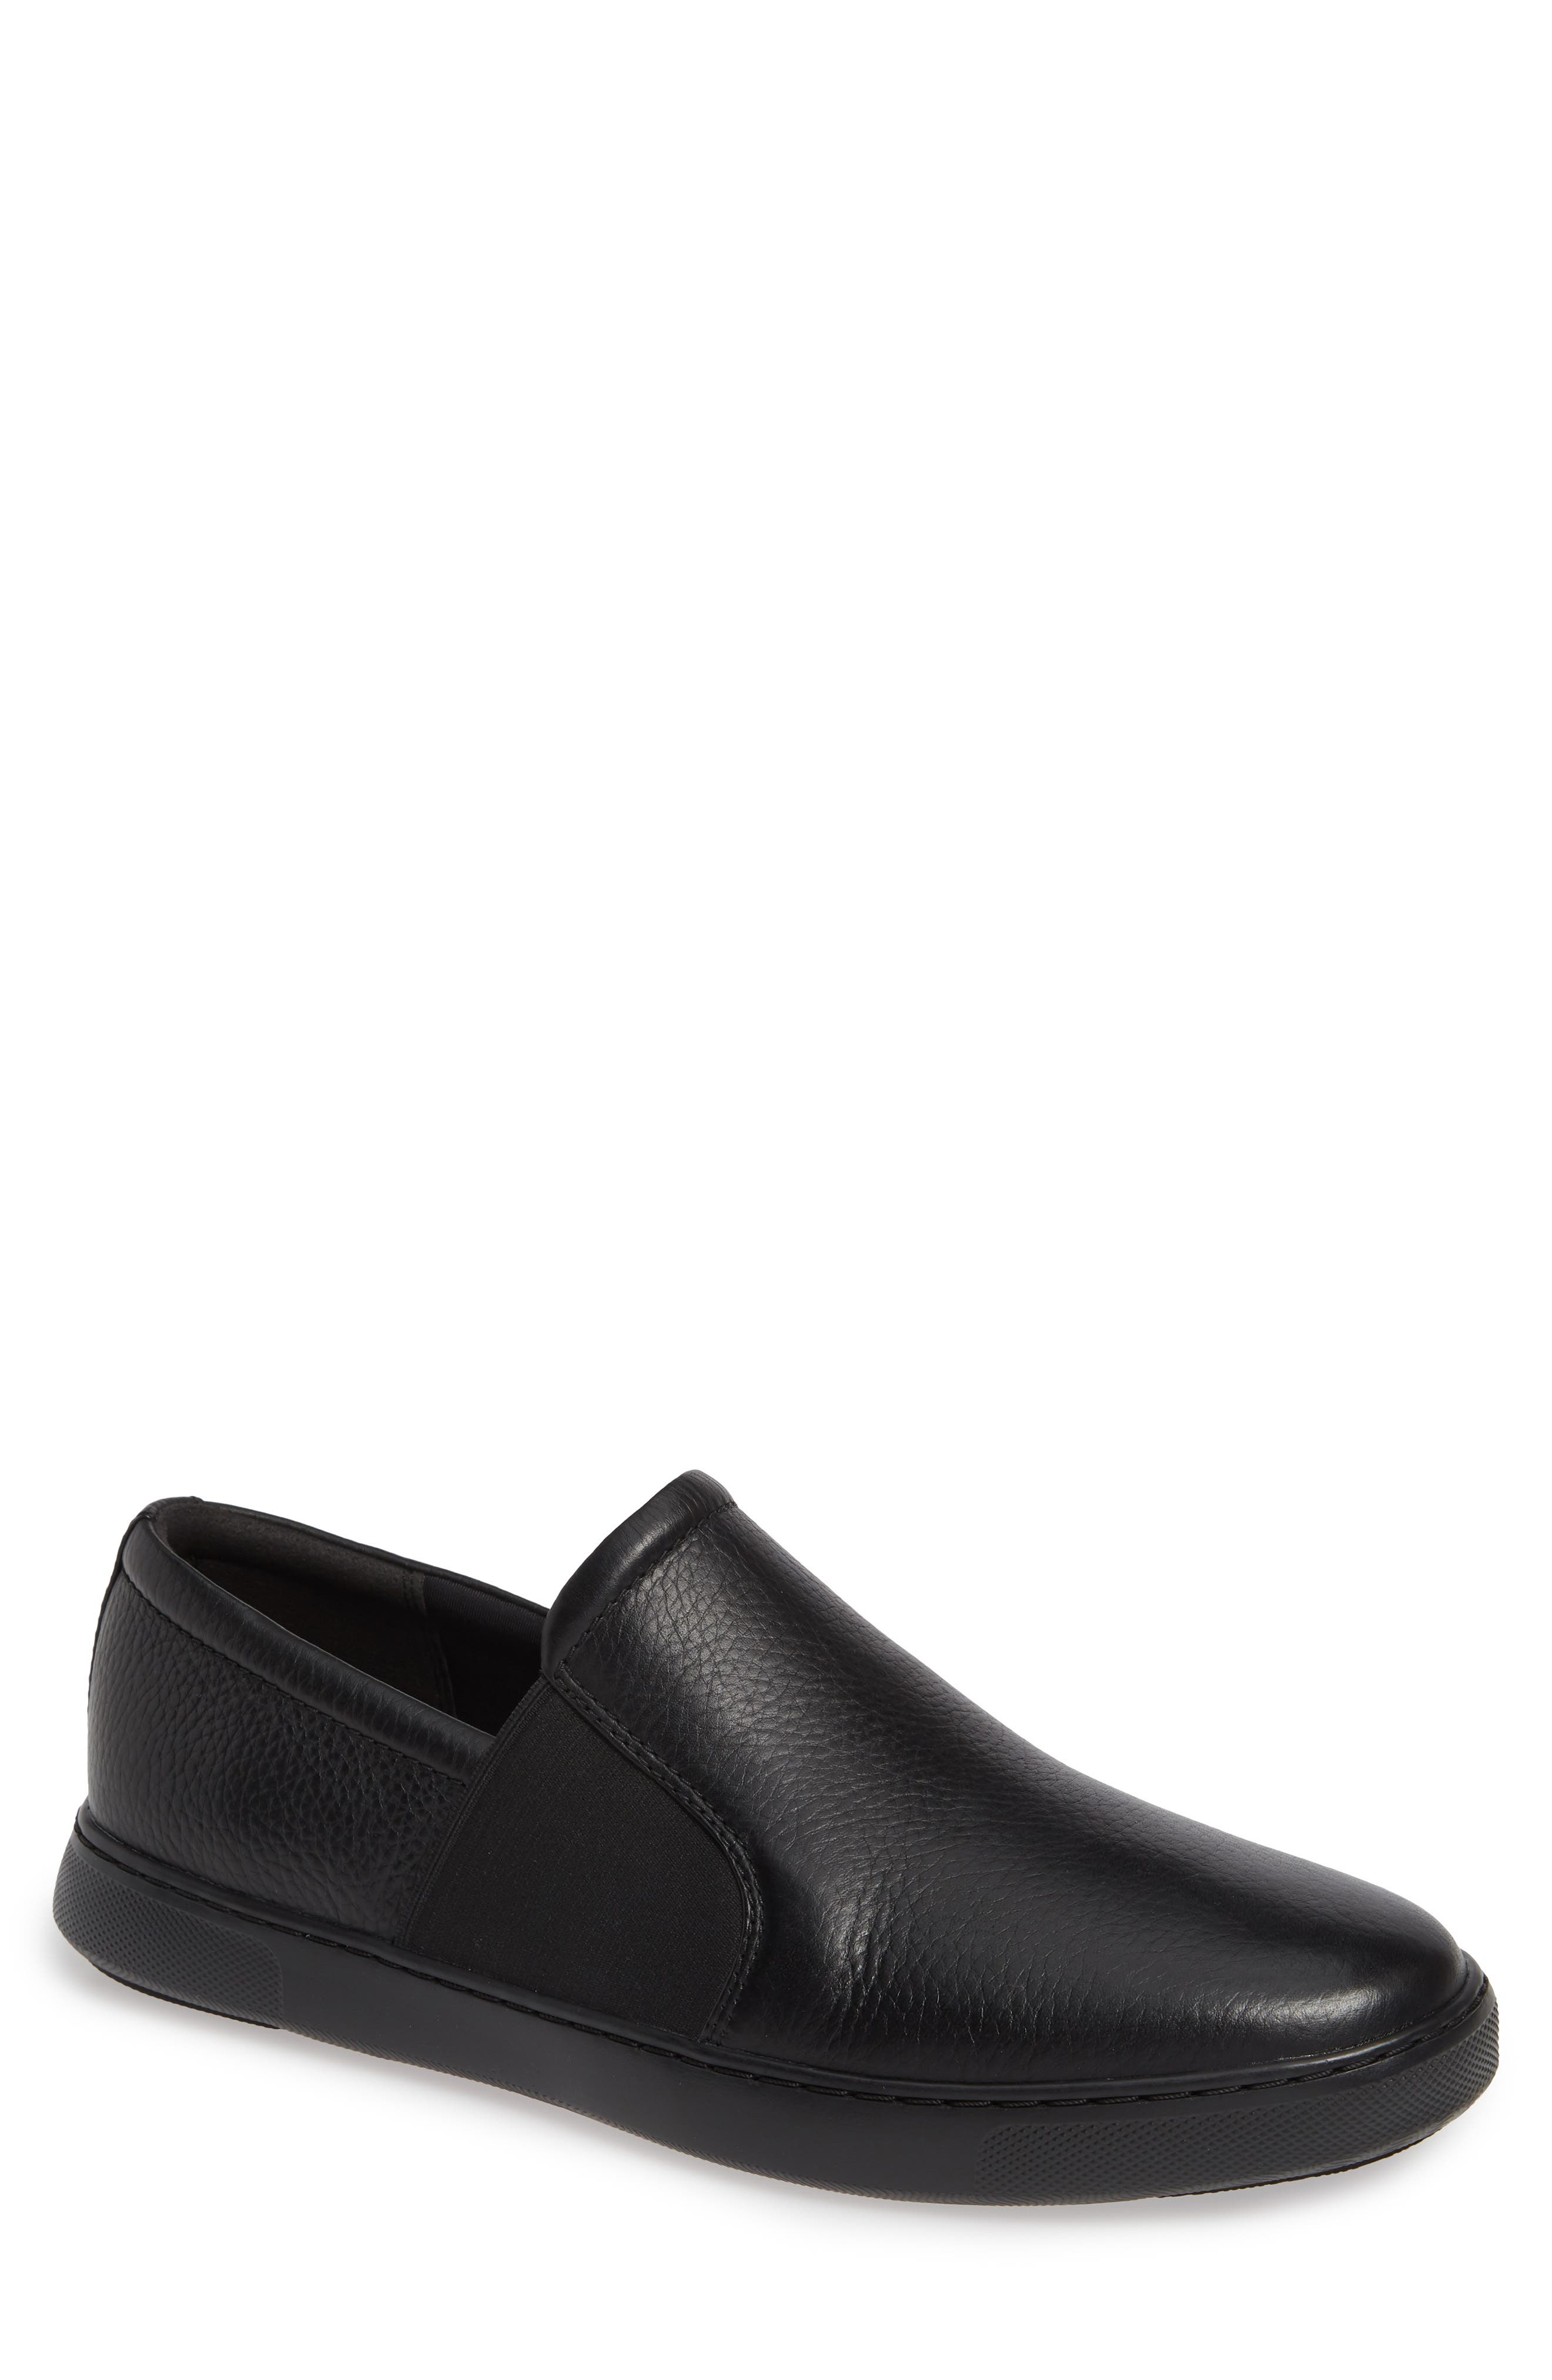 FITFLOP,                             Collins Slip-On Sneaker,                             Main thumbnail 1, color,                             BLACK